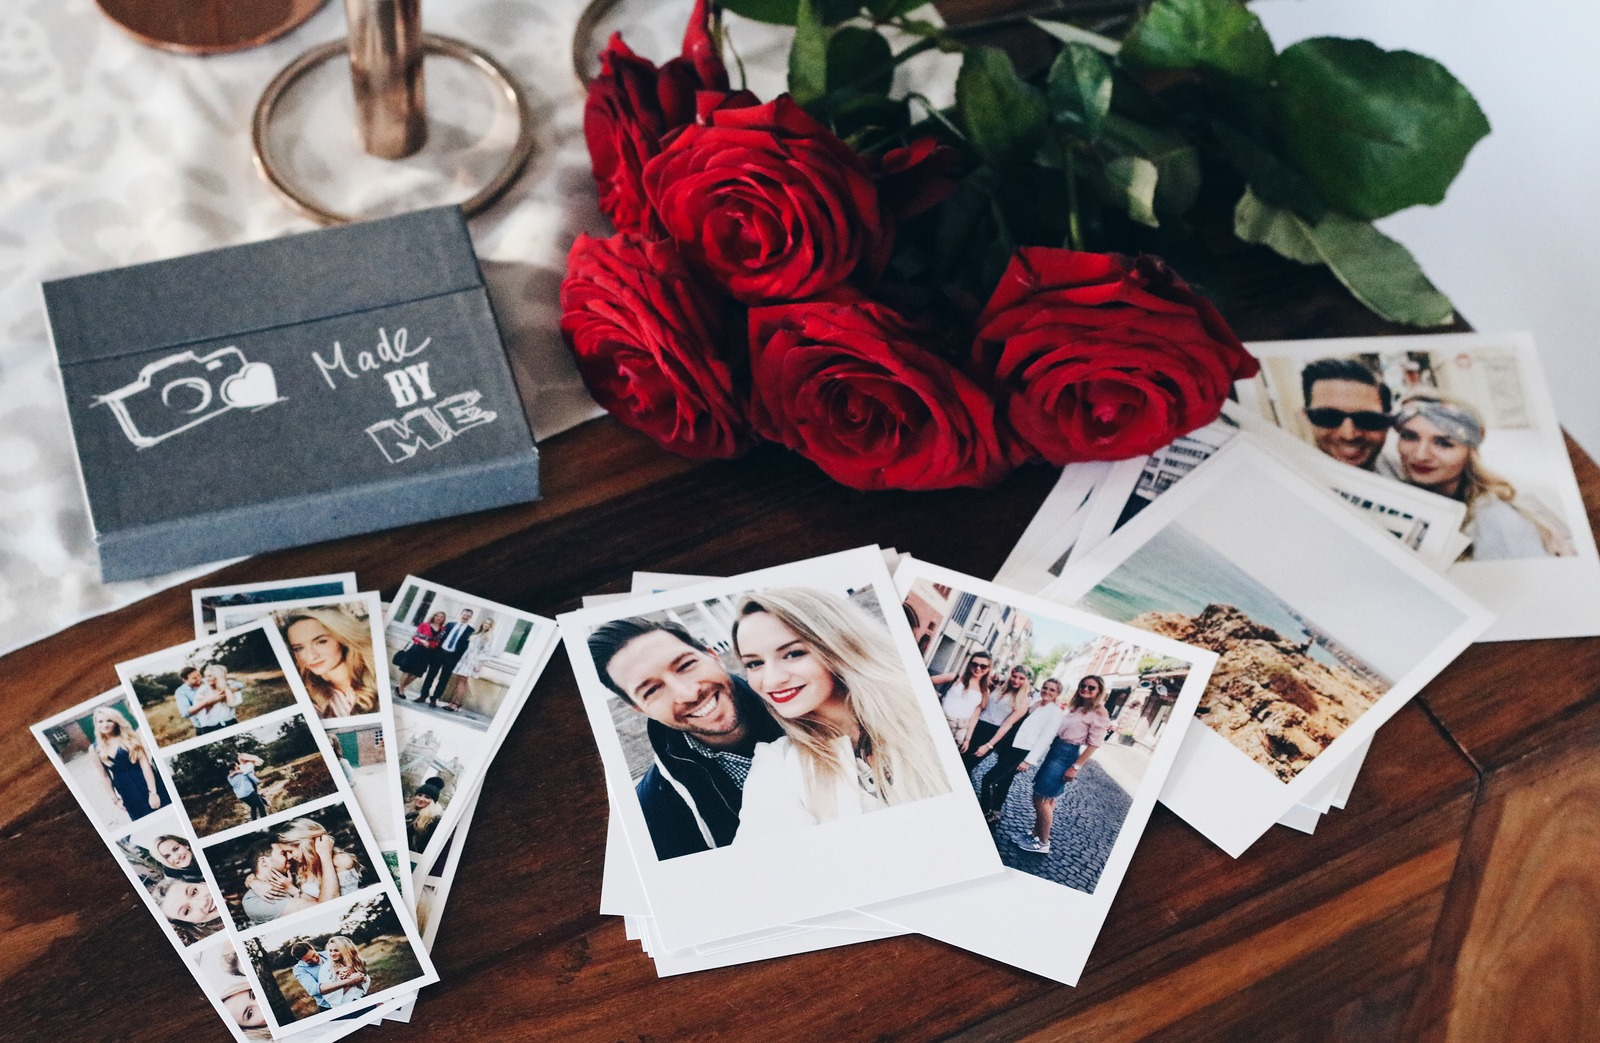 Mrs.-Brightside-Blogger-Blog-Hamburg-Fashion-Travel-Lifestyle-Pixum-Fotobücher-Fotobuch-Puzzle-Polaroids-Geschenkidee-Weihnachten